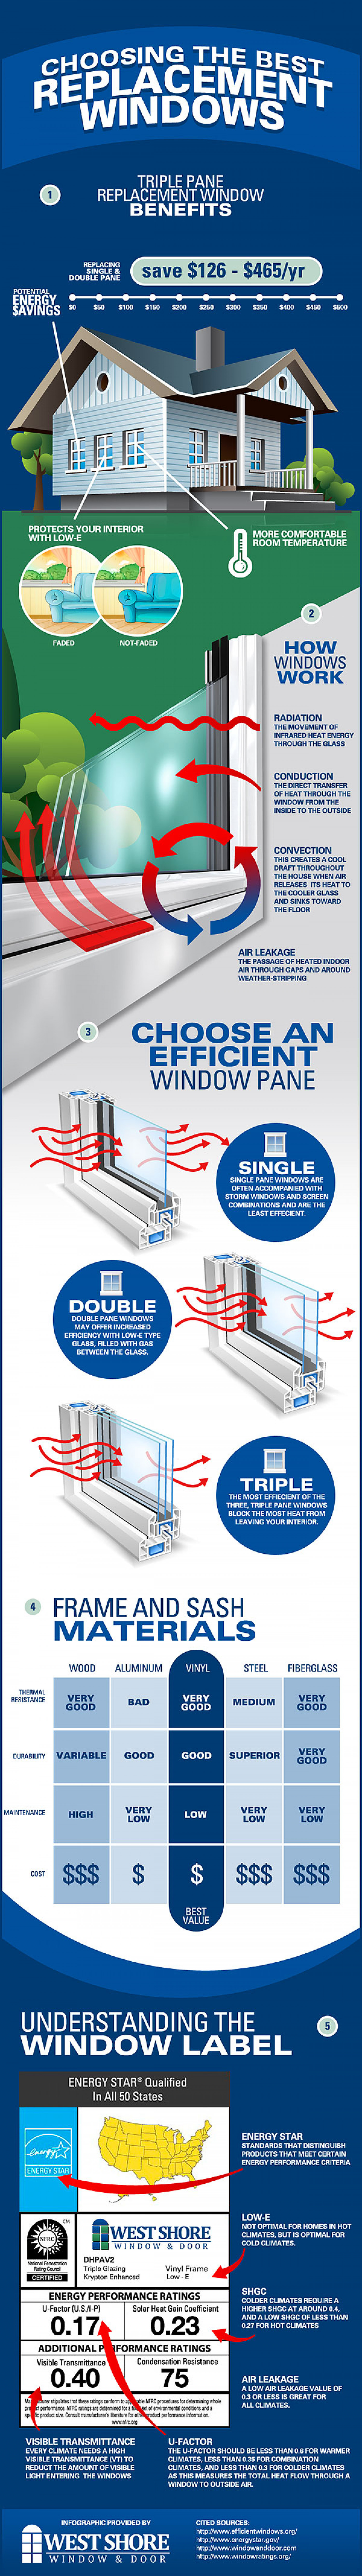 Choosing The Best Replacement Windows Infographic